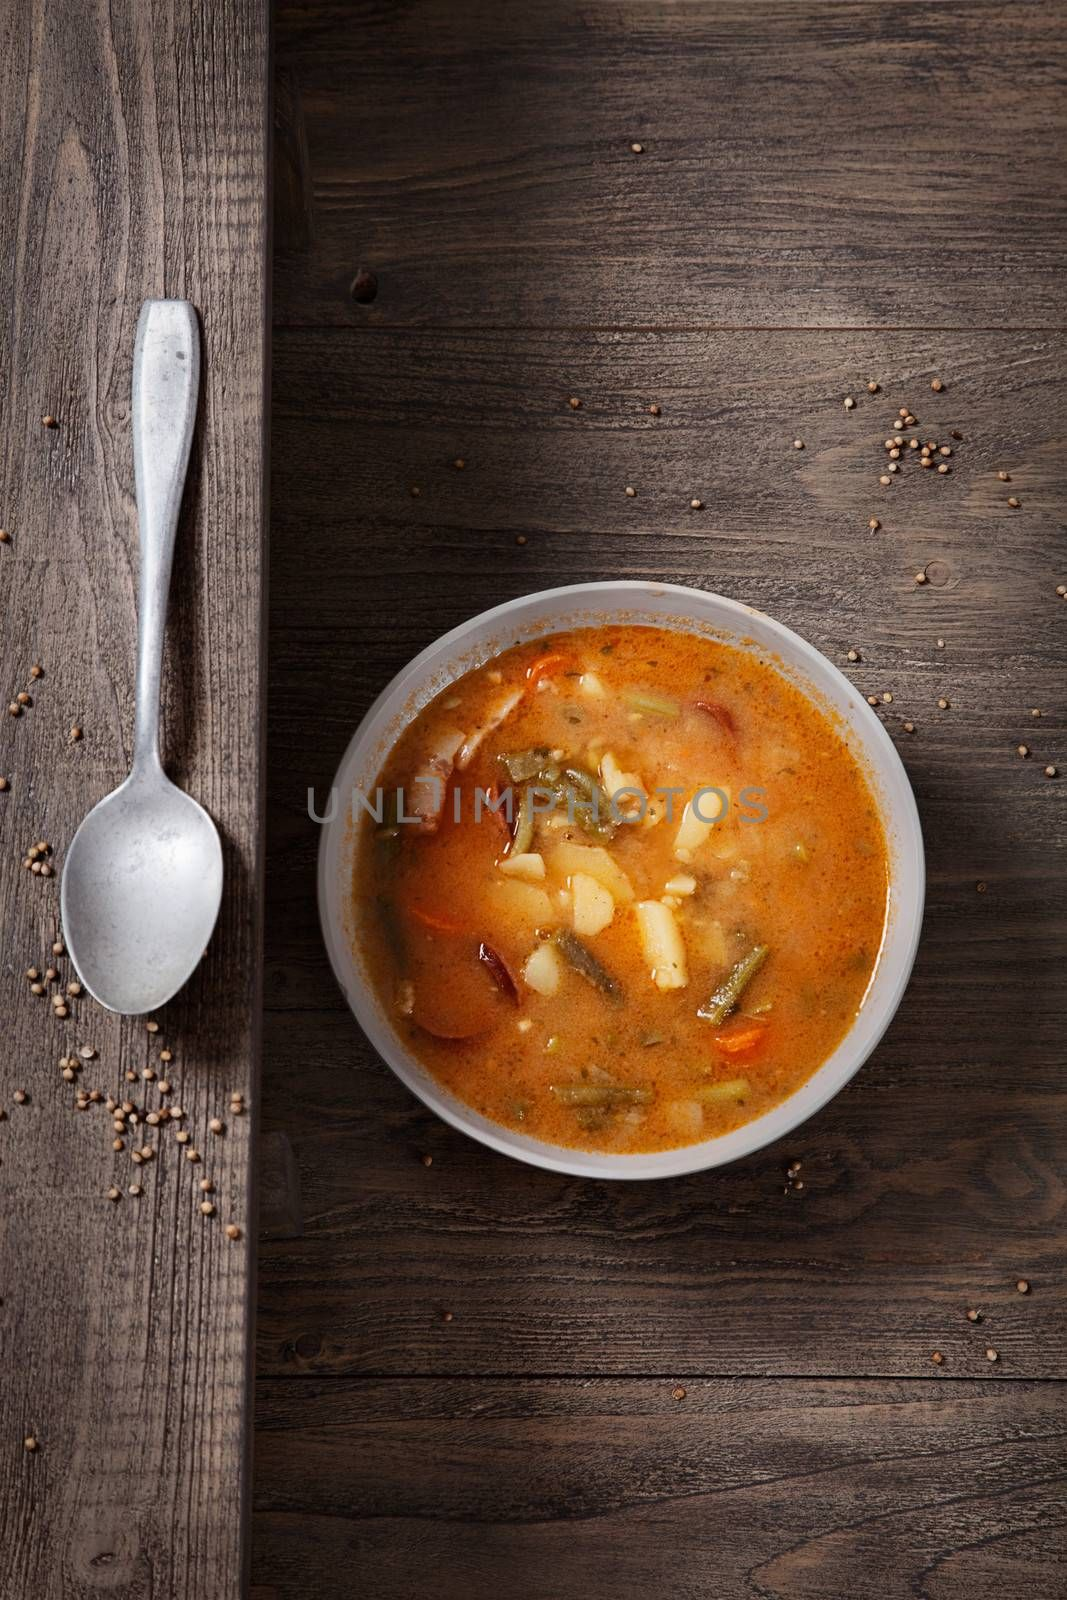 Delicious vegetable stew soup with sausage and french beans on wood.